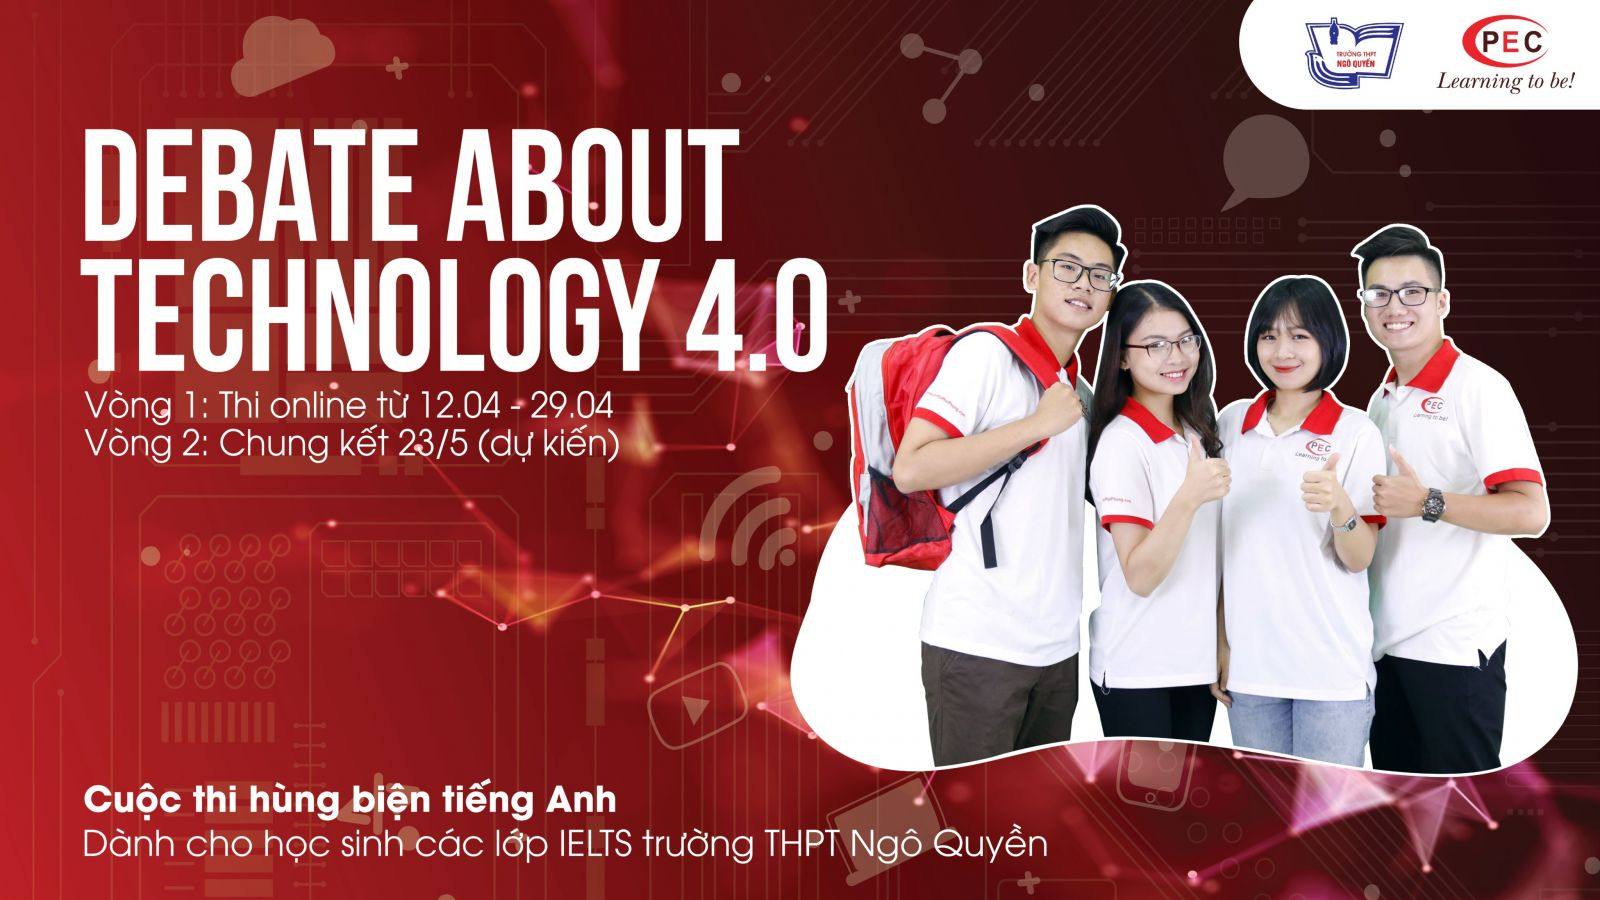 """DEBATE ABOUT TECHNOLOGY 4.0"" - THPT Ngô Quyền"